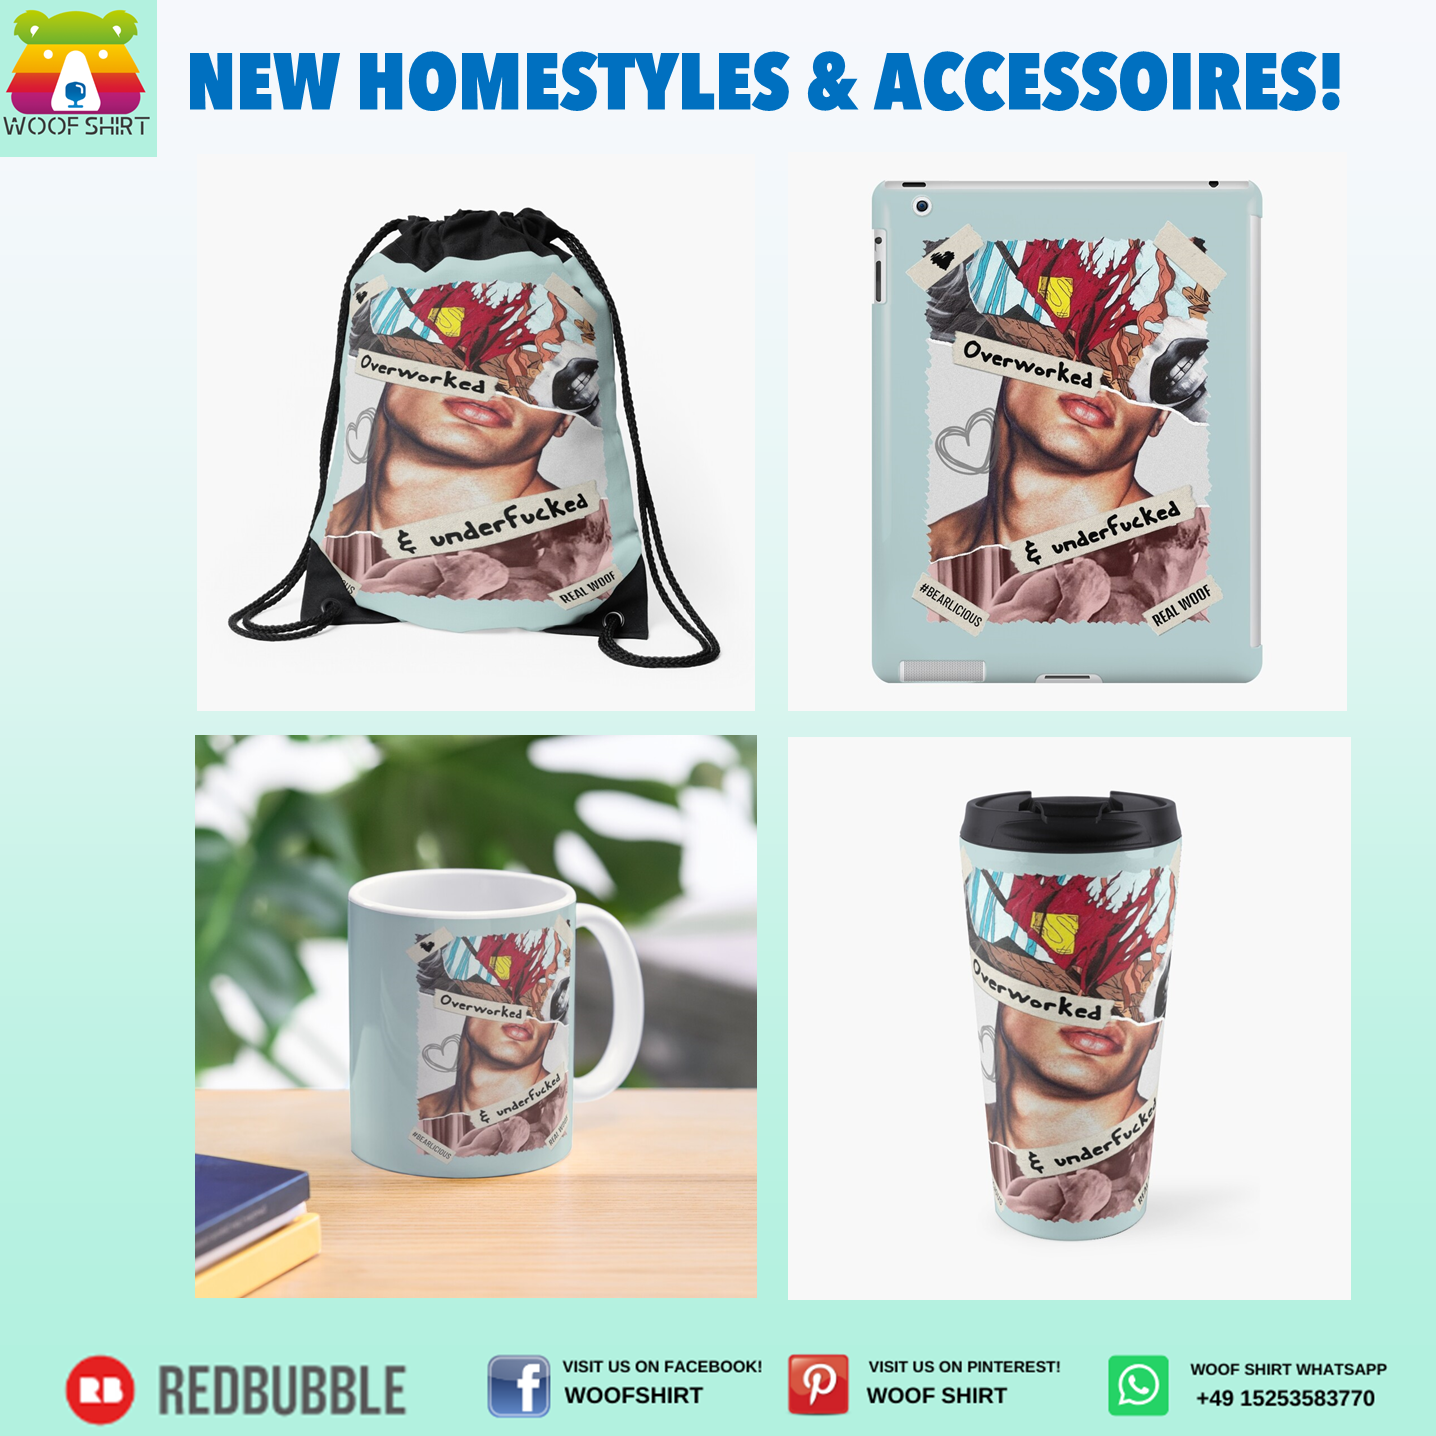 New in our Shop at Redbubble ▶️ #homestyle #homedecor #interiordesign #homedesign #design #home #homesweethome #decor #interior #interiors #homestyling #homedecoration #interiorstyling #style #interiordecor #instahome #furniture #luxury #architecture #decoration #interiordesigner #homeinspo #livingroom #art #handmade #realestate #modern #interiordecorating #instadecor #inspiration